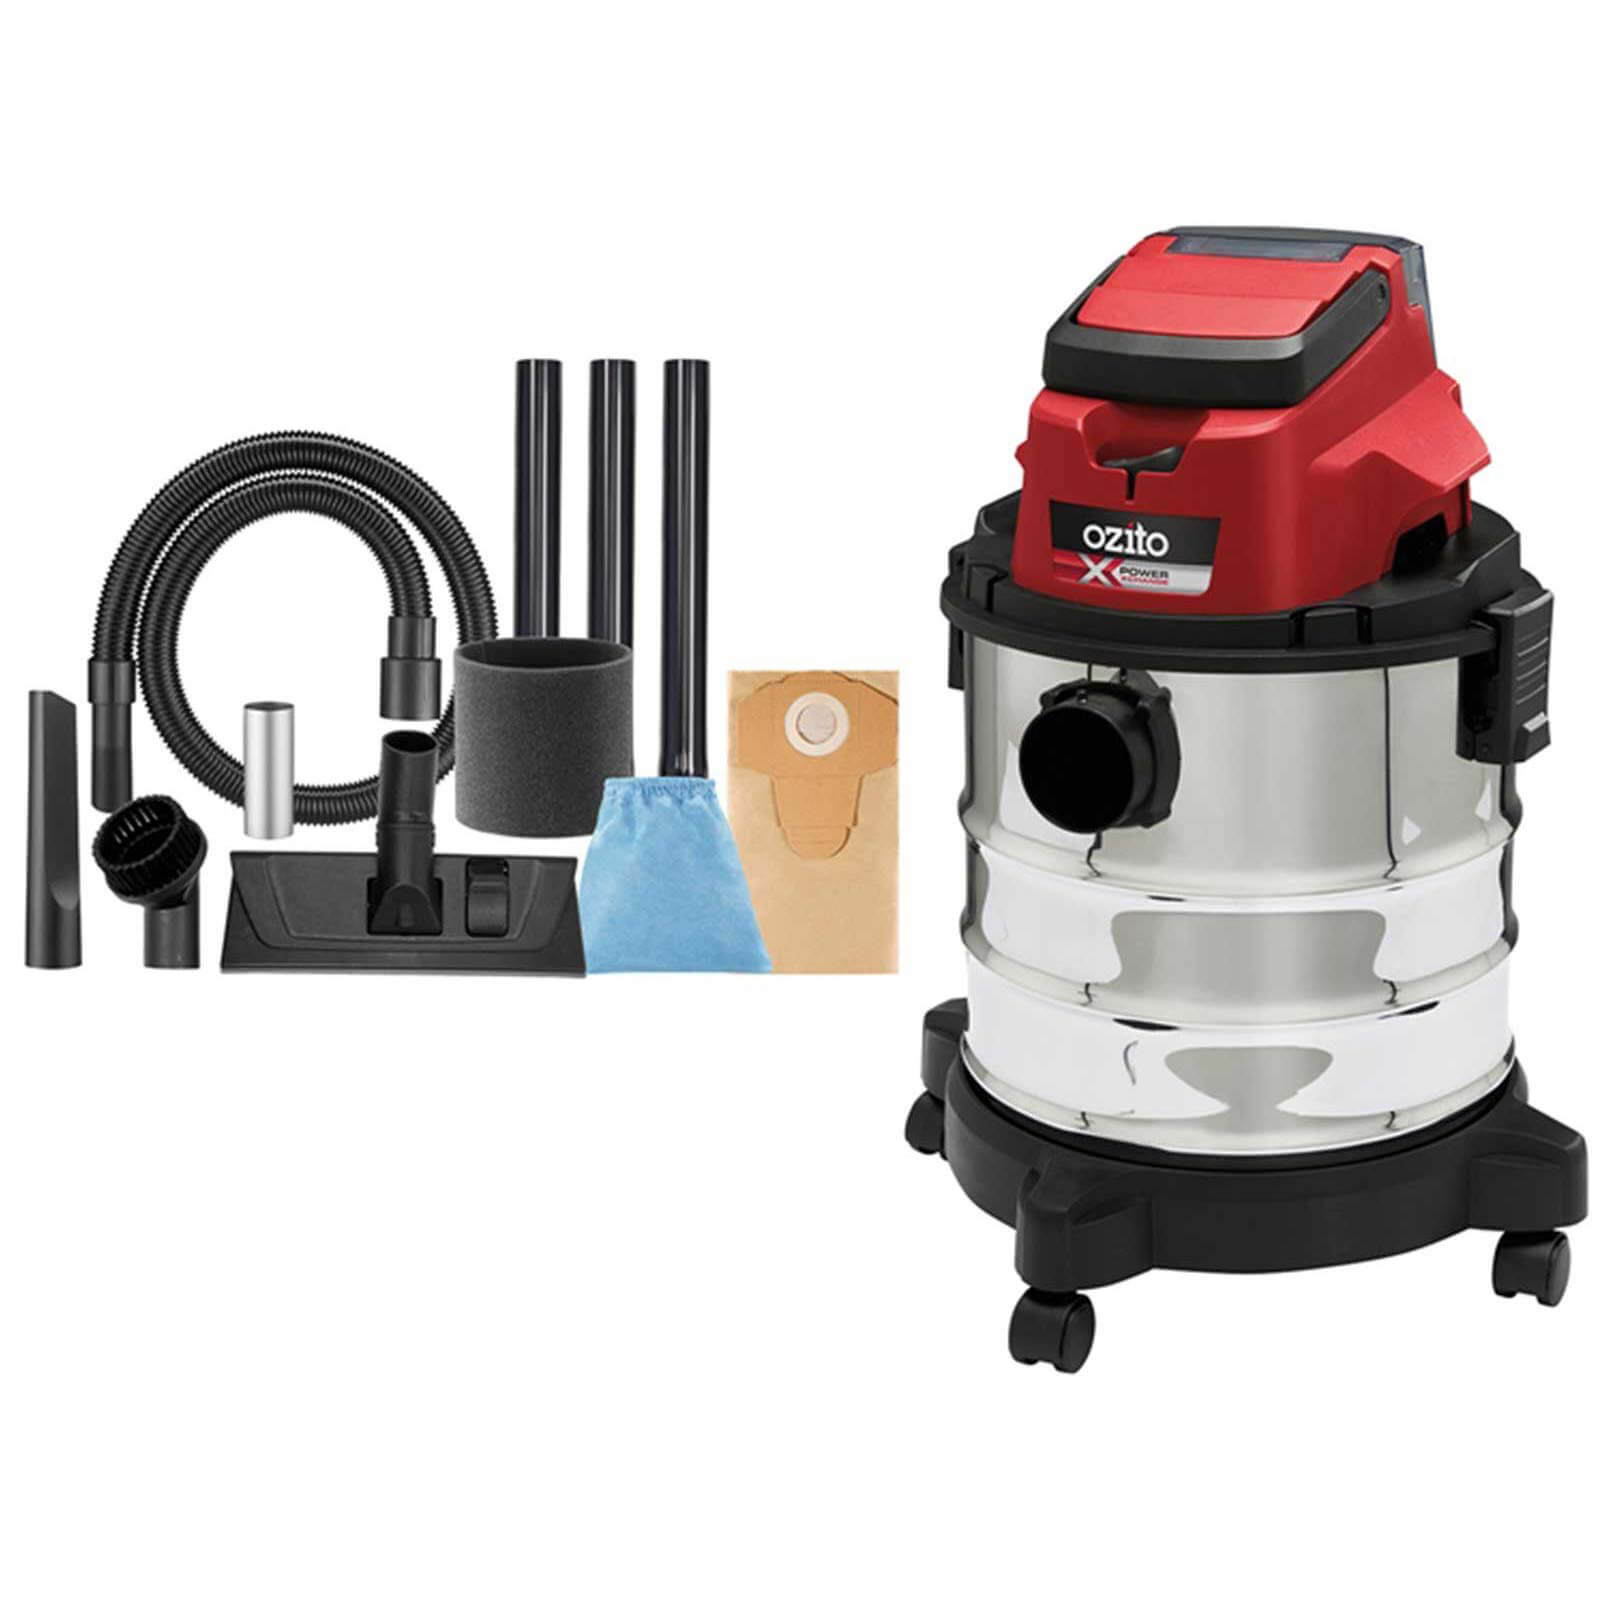 Ozito PXVWD 18v Cordless Mini Wet and Dry Vacuum Cleaner No Batteries No Charger No Case